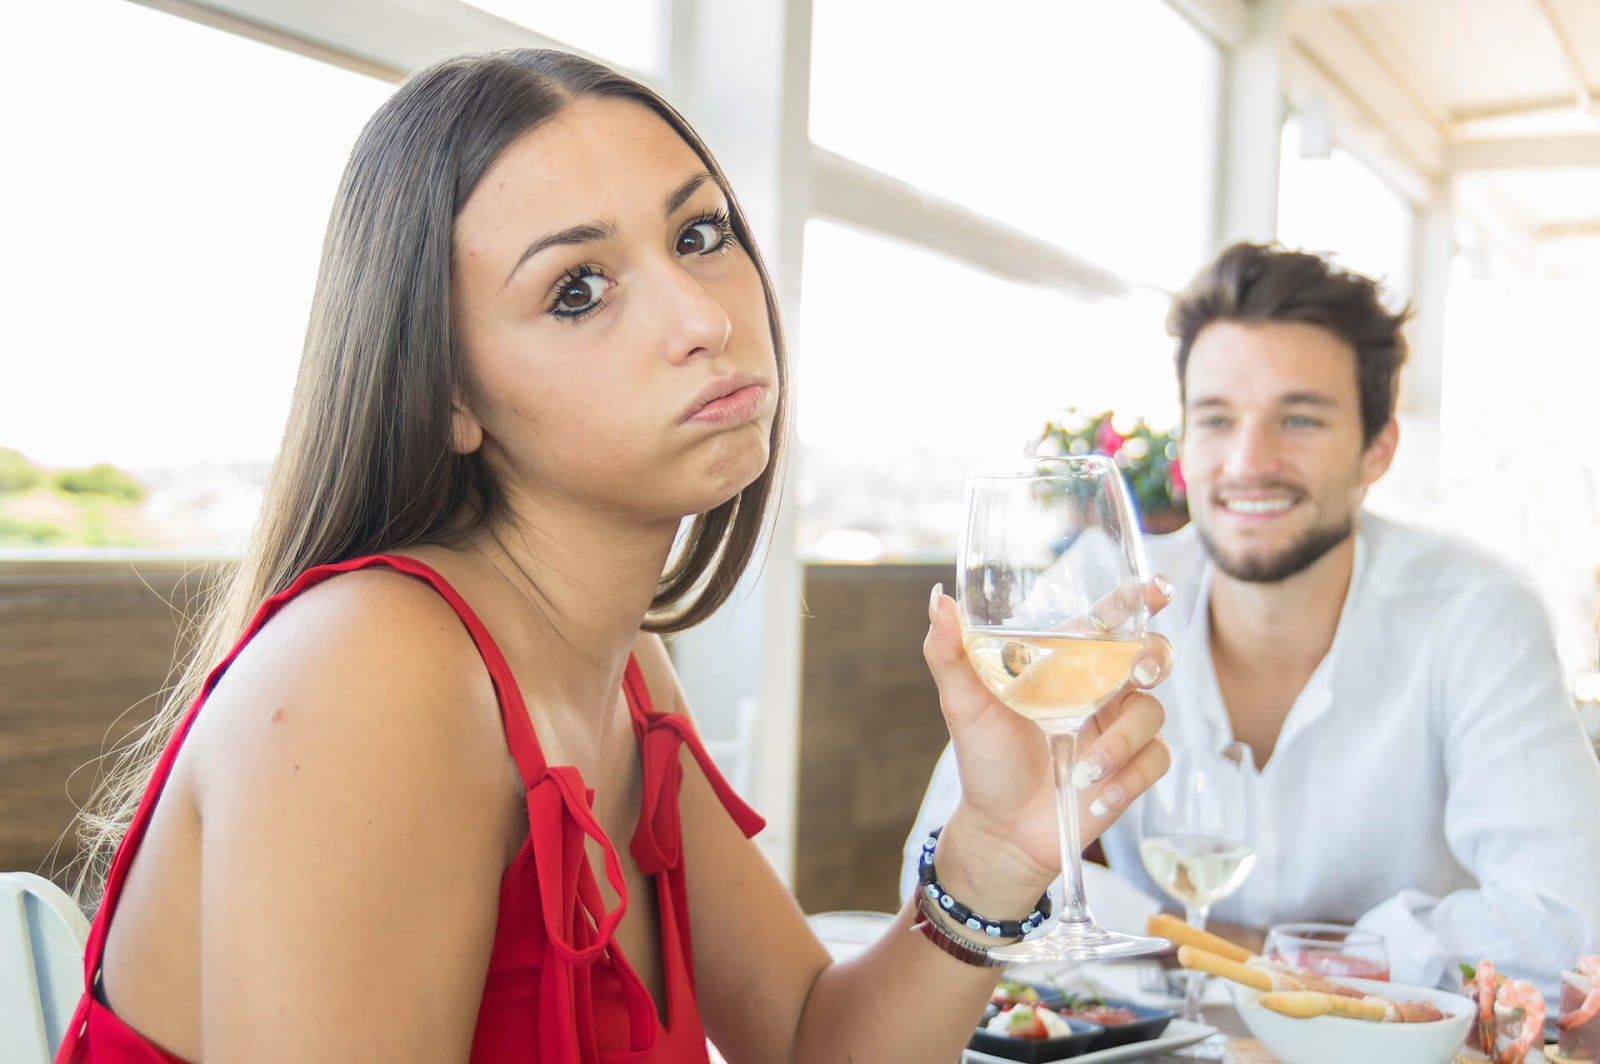 Woman with bored expression on a date